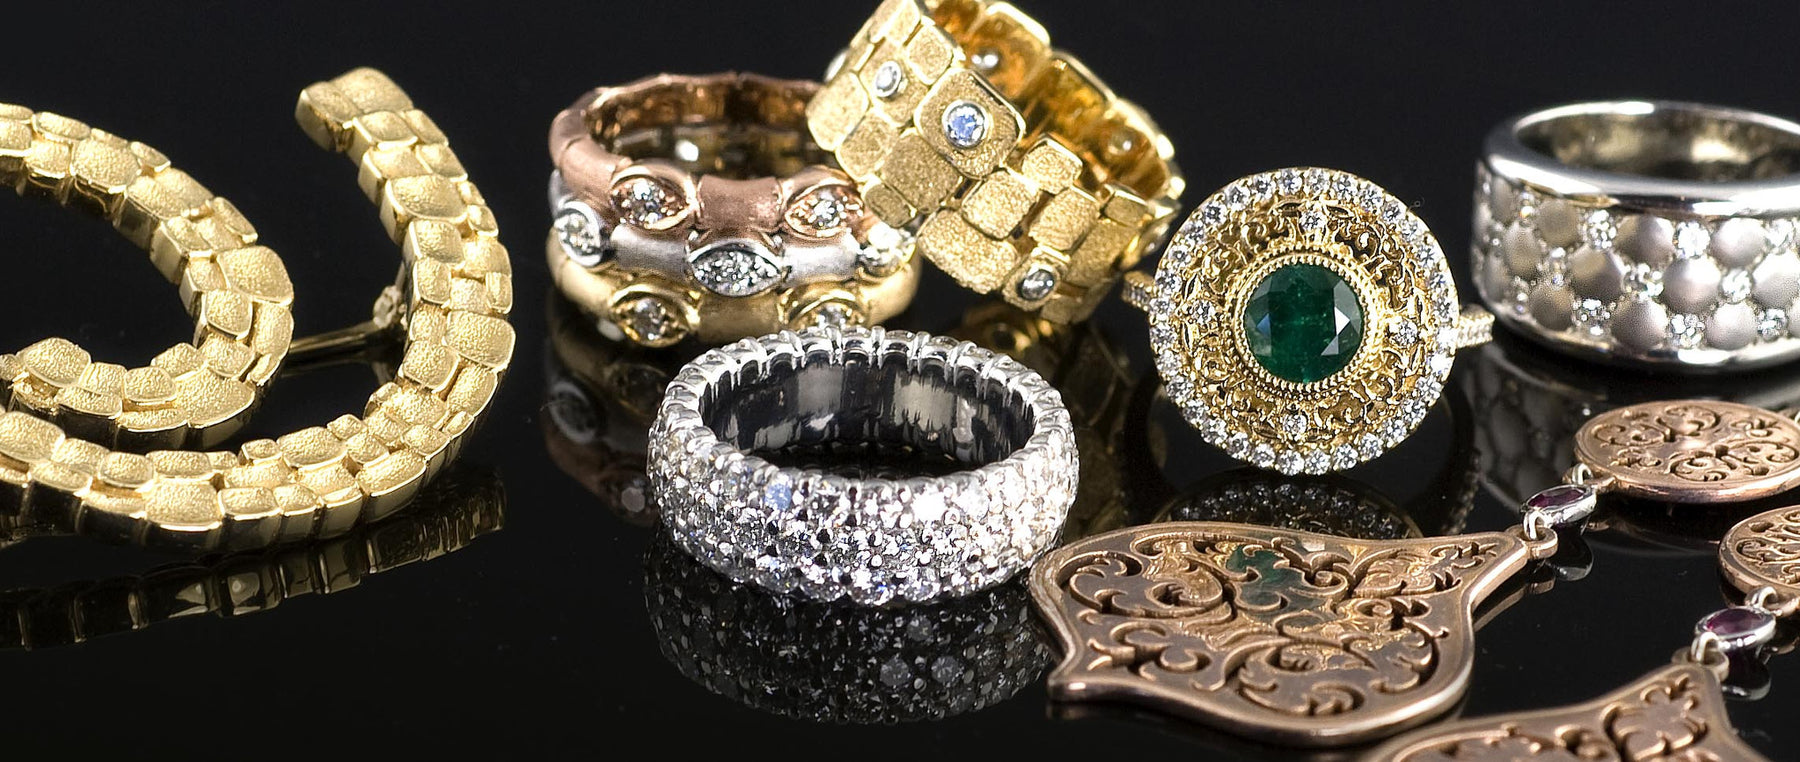 How to Buy Jewelry When You Have a Metal Allergy